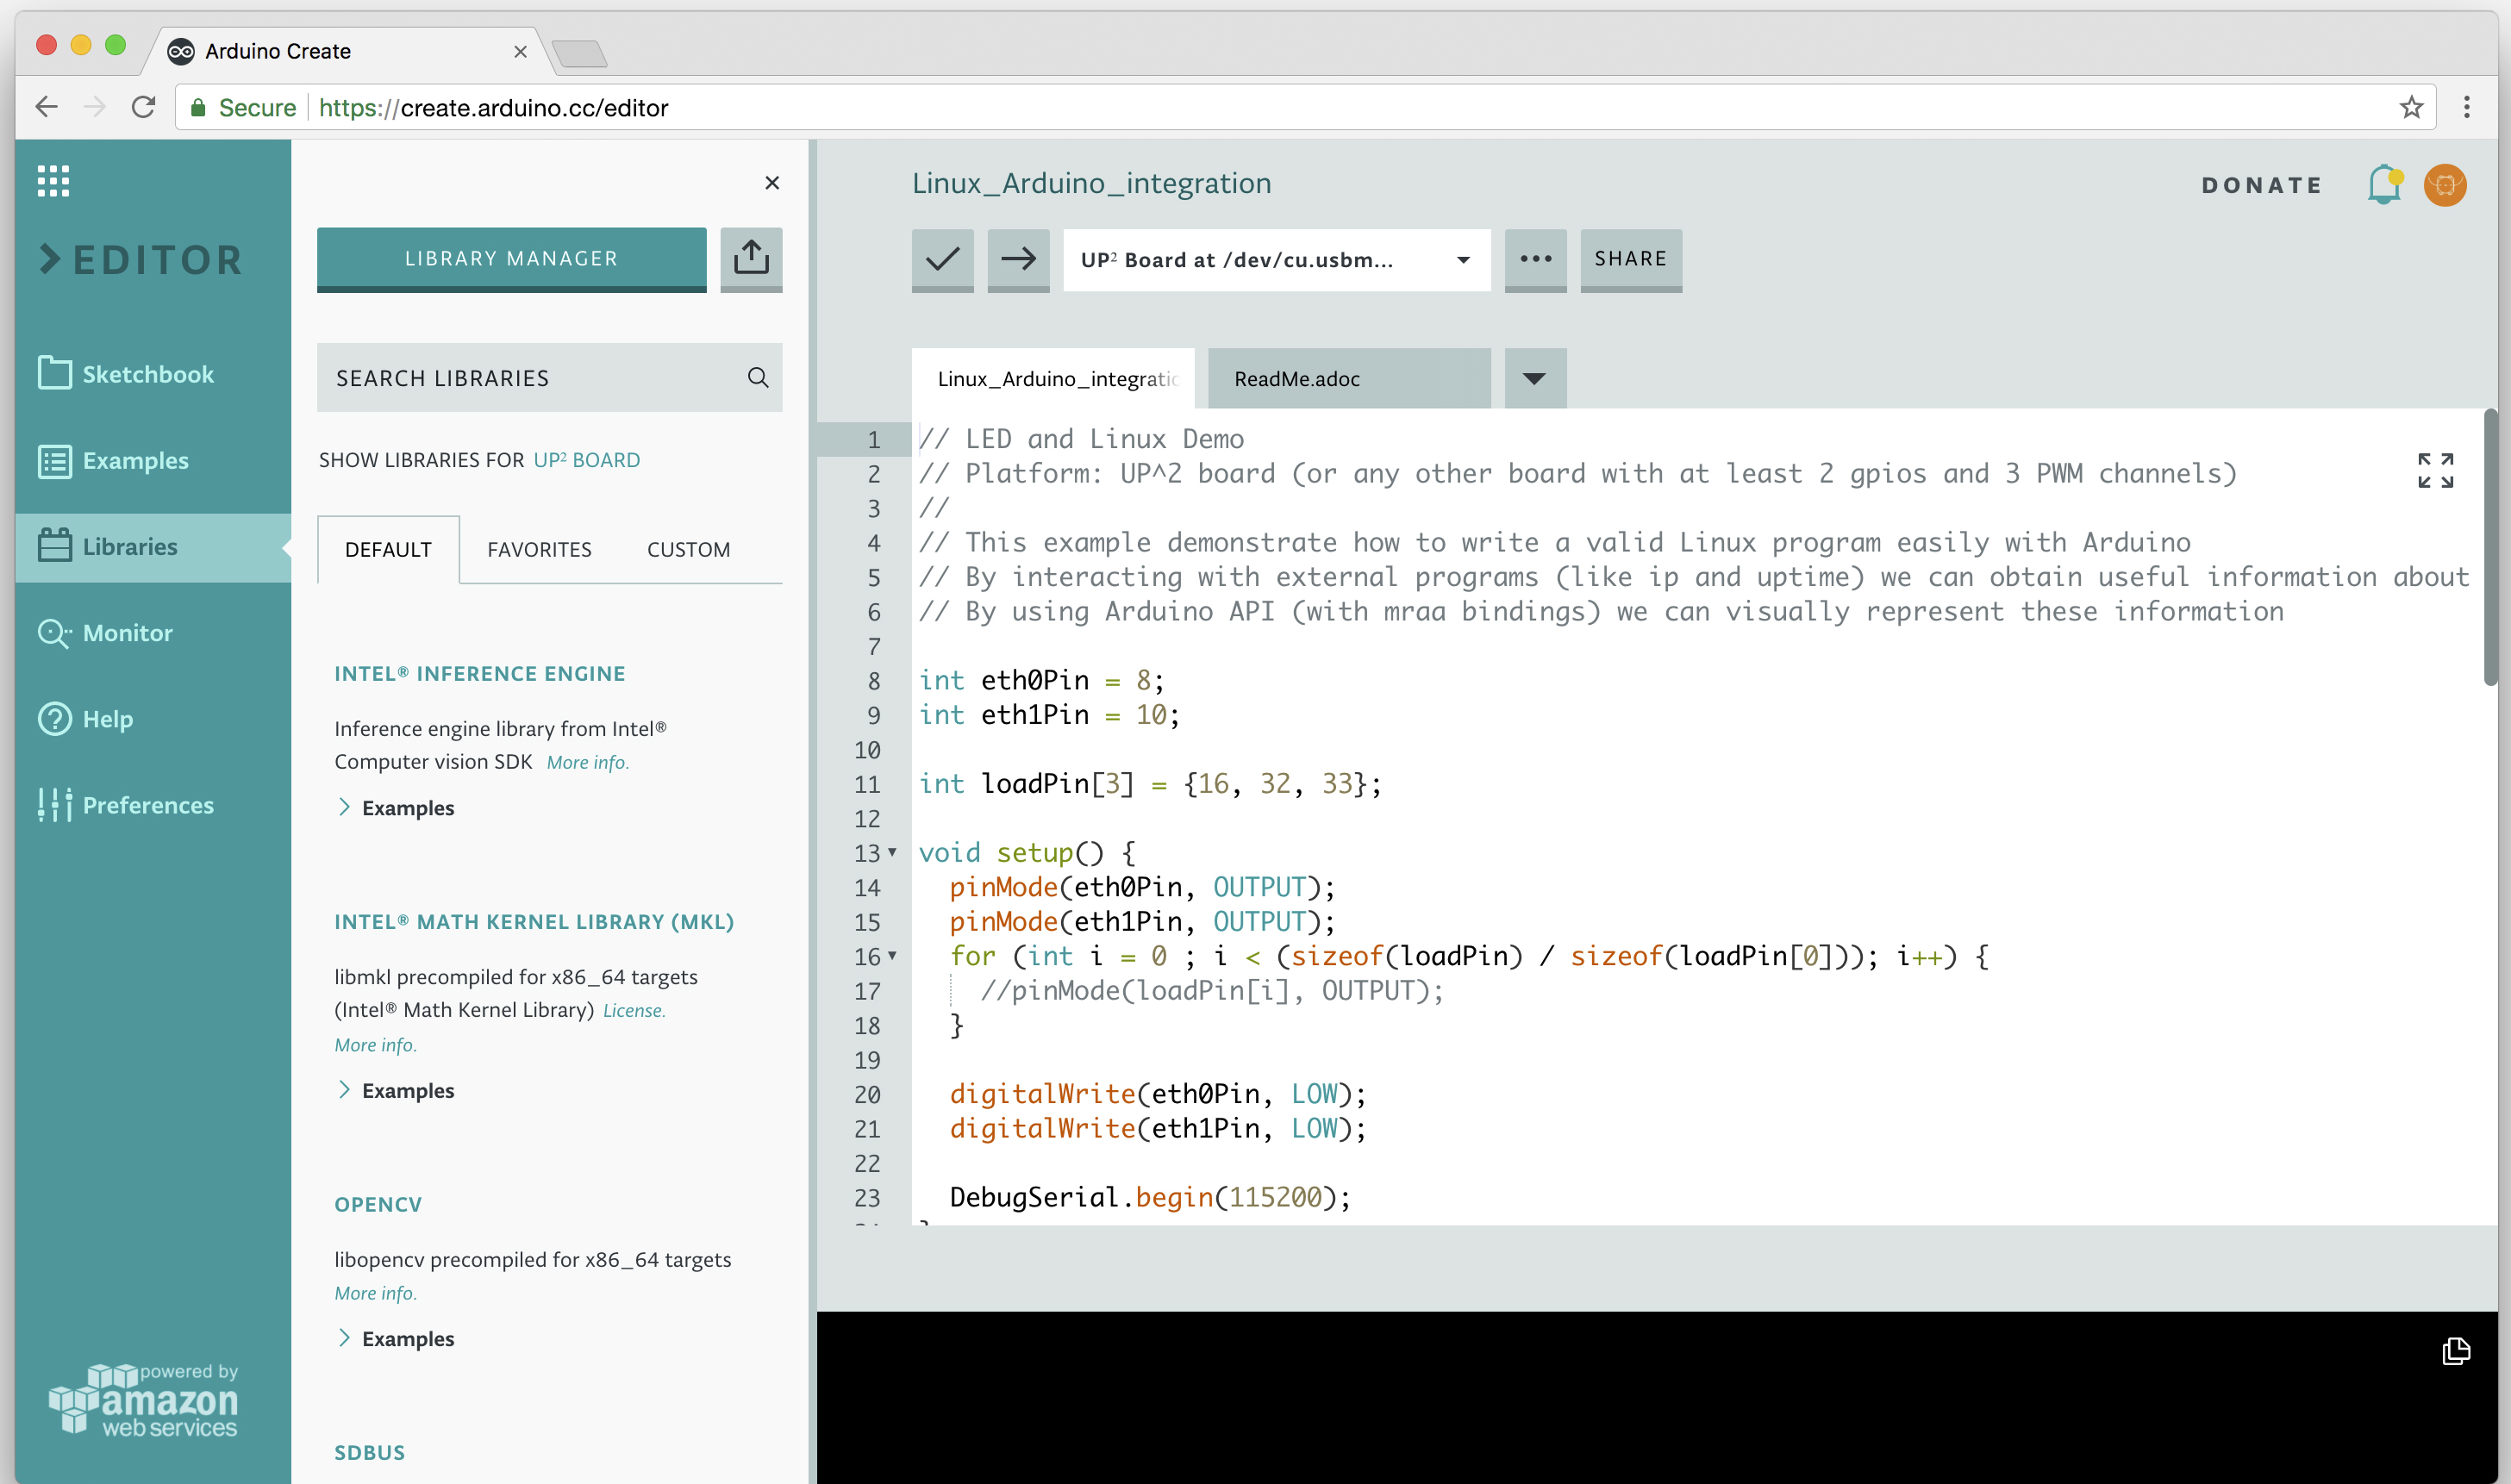 Arduino Create Adds Support for Linux Development Boards